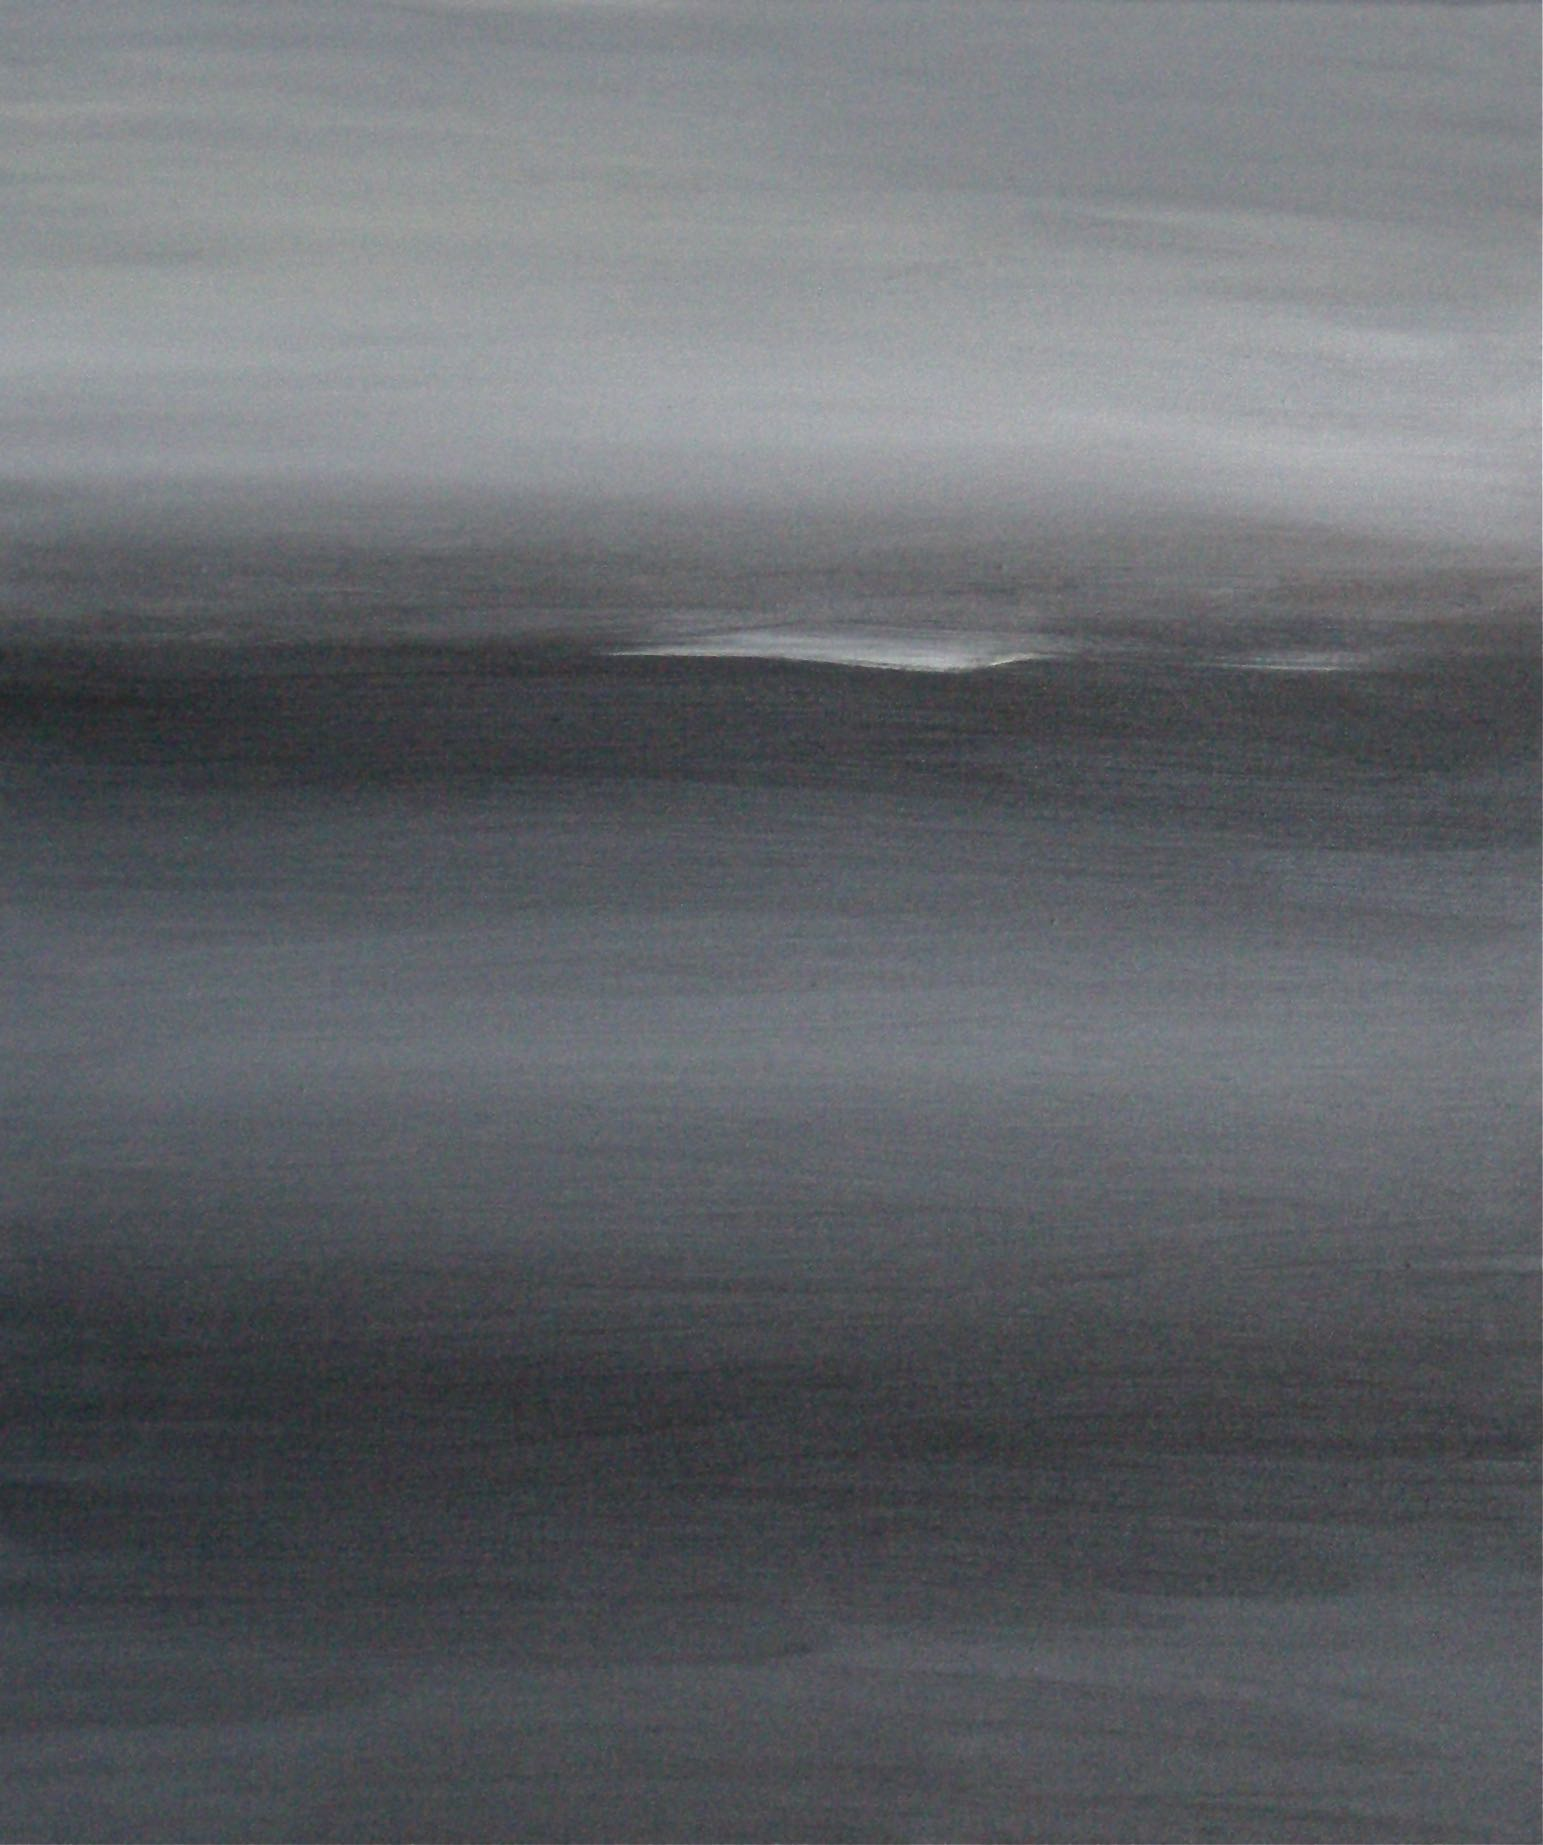 no title (serie: 'Void'), 2012, acrylic on linen, 60 x 80 cm